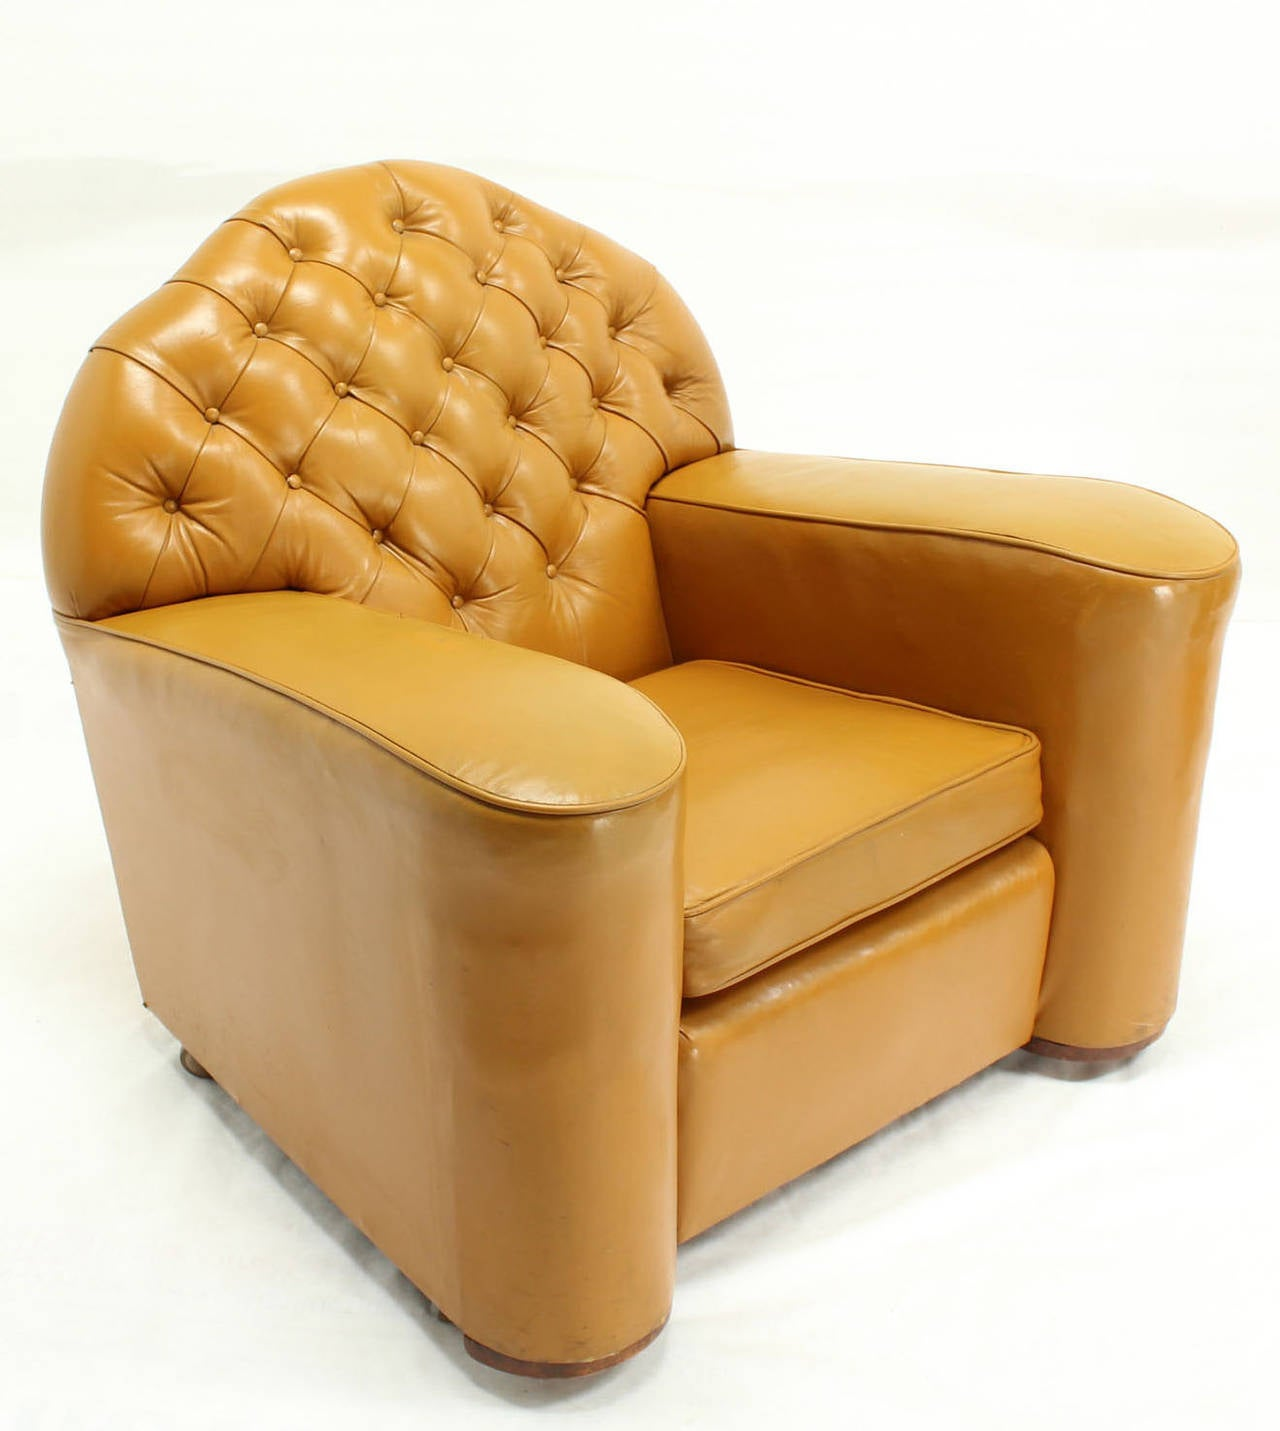 big chairs for sale wheelchair umbrella pair of large oversize tufted chesterfield leather lounge